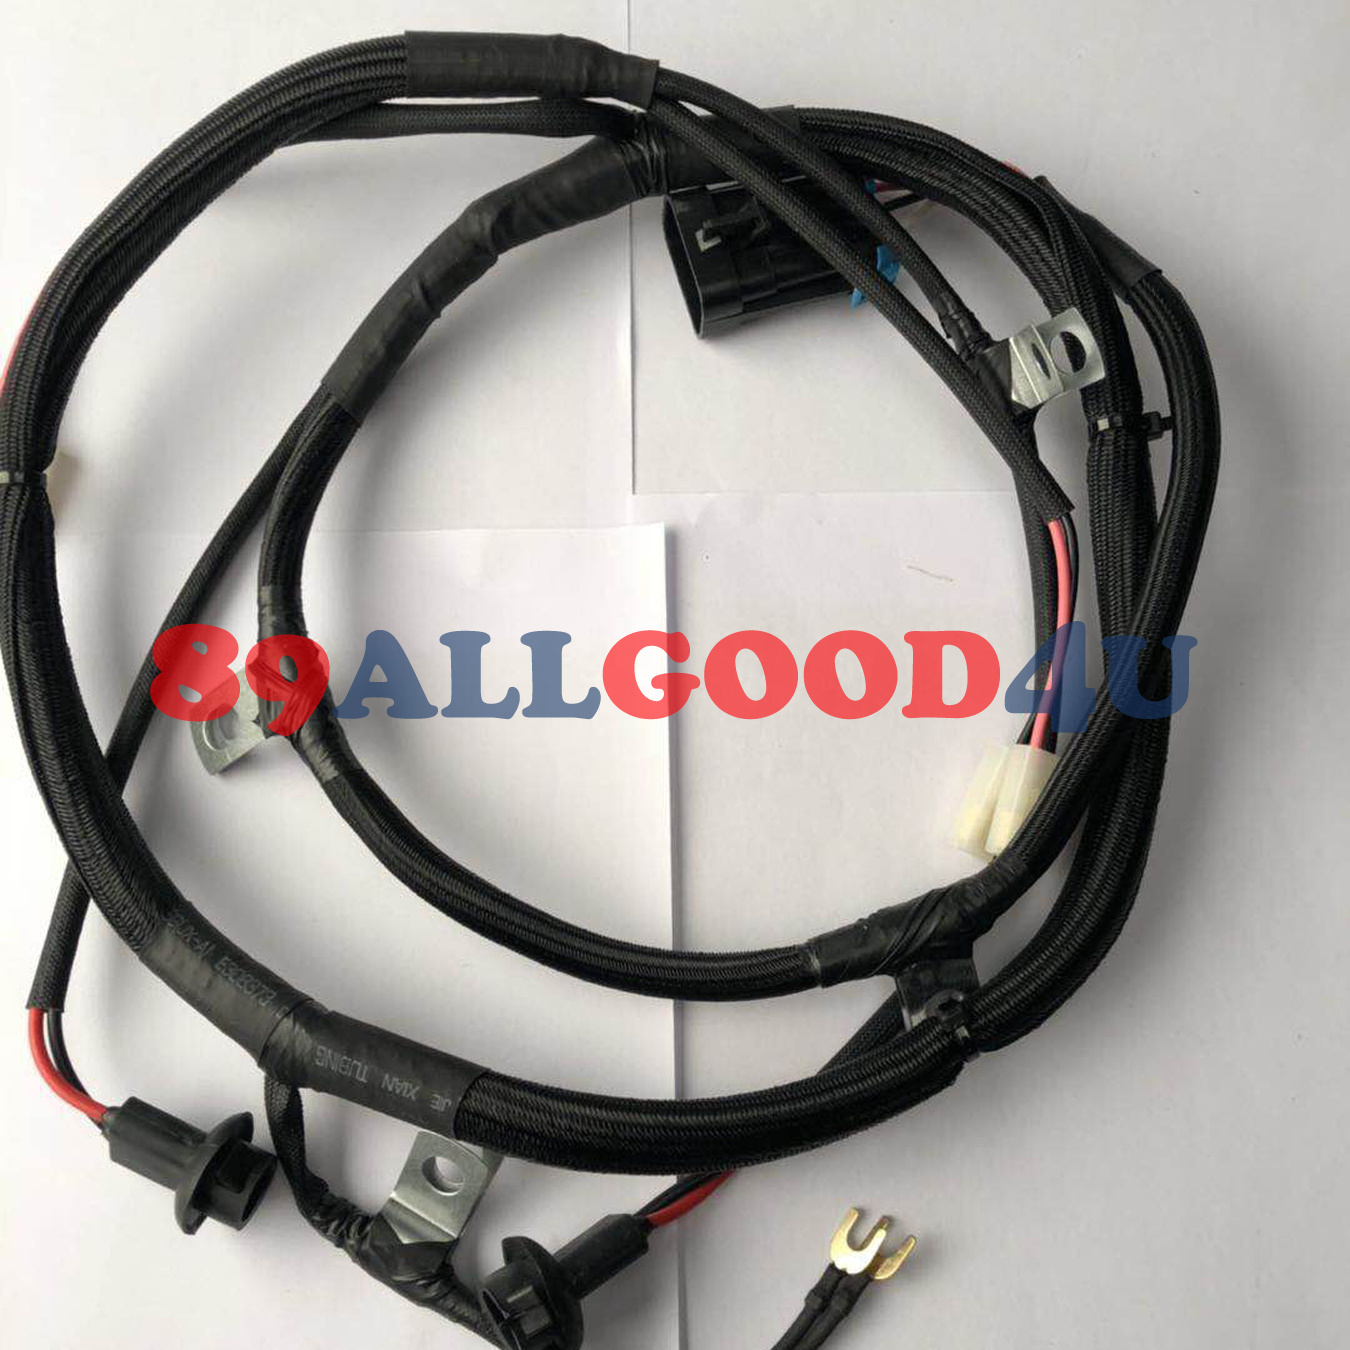 Rear Door Wiring Harness 6716419 For Bobcat Skid Steer S185 | eBayeBay